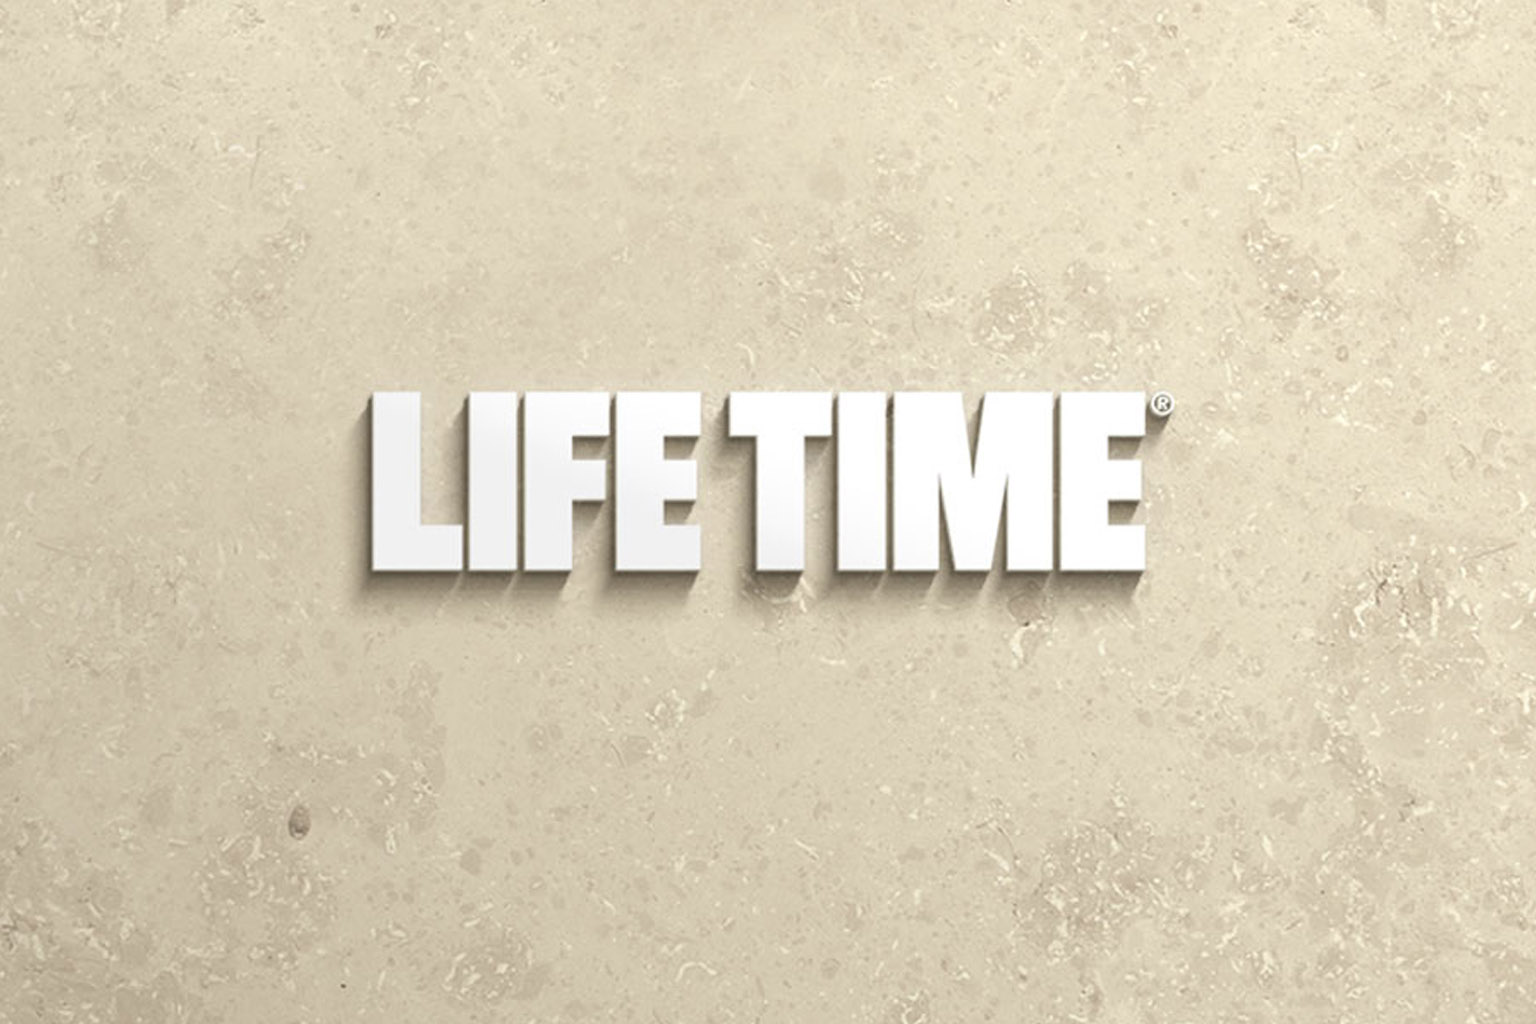 White Life Time master logo on a beige tile background